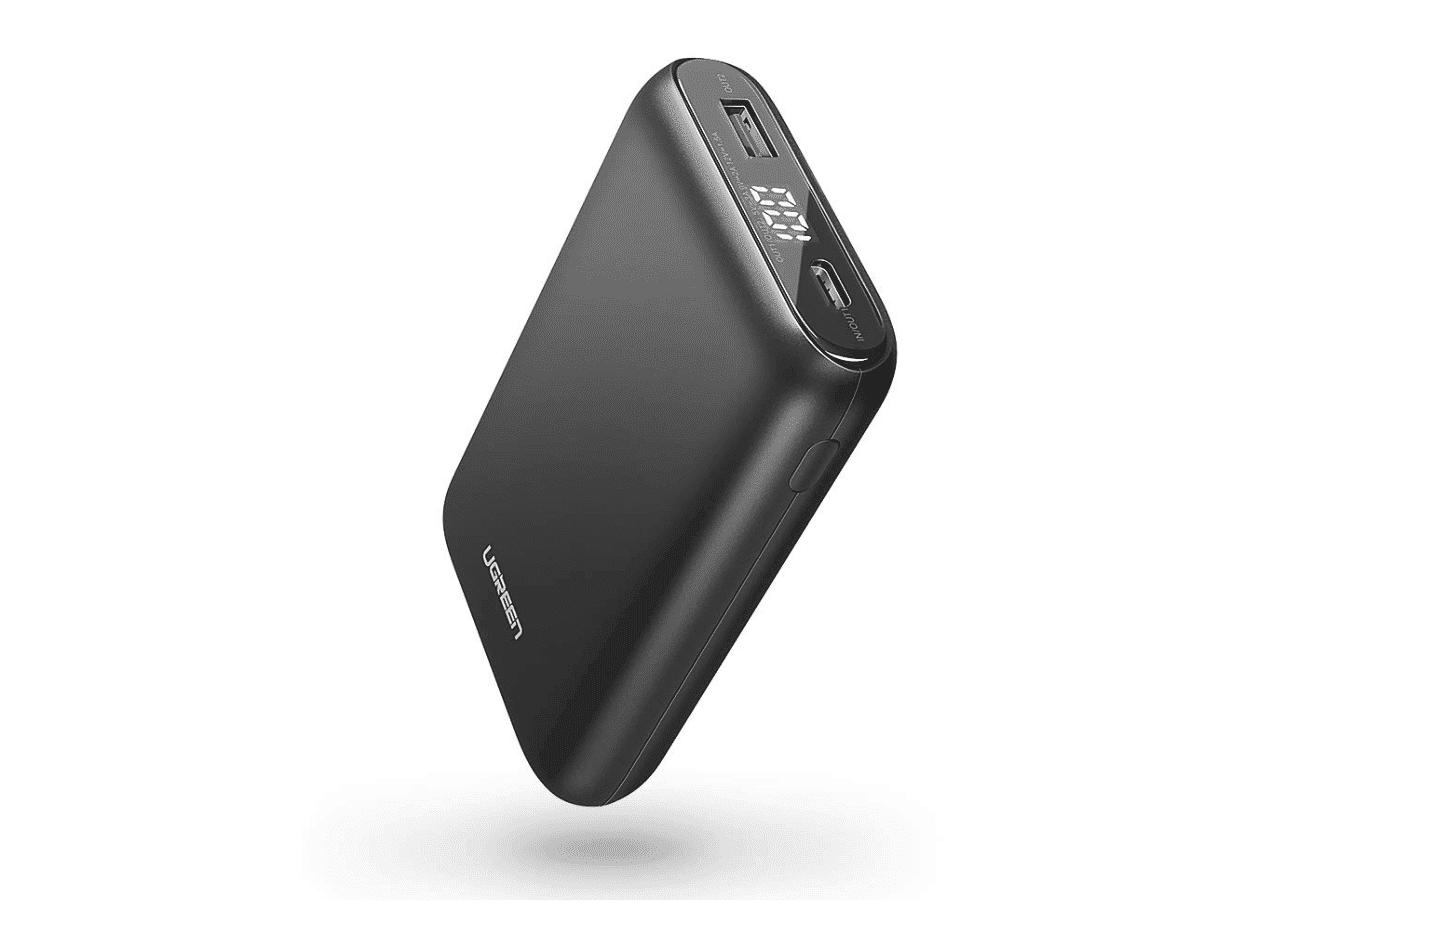 Get UGREEN 18W 10000mAh USB-C Portable Charger at 20% OFF on Amazon